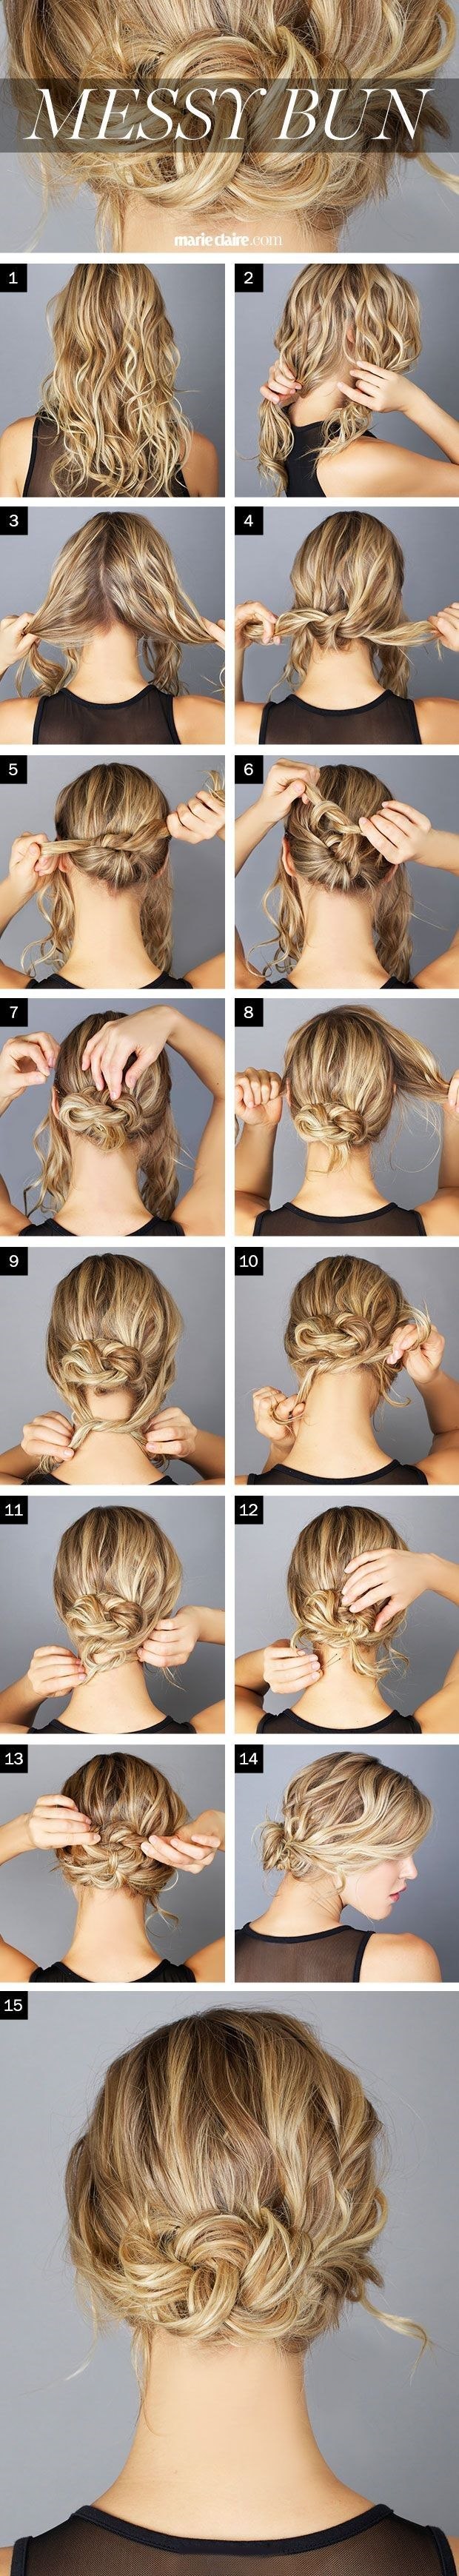 Top ideas about wedding hair on pinterest blonde hair buns and